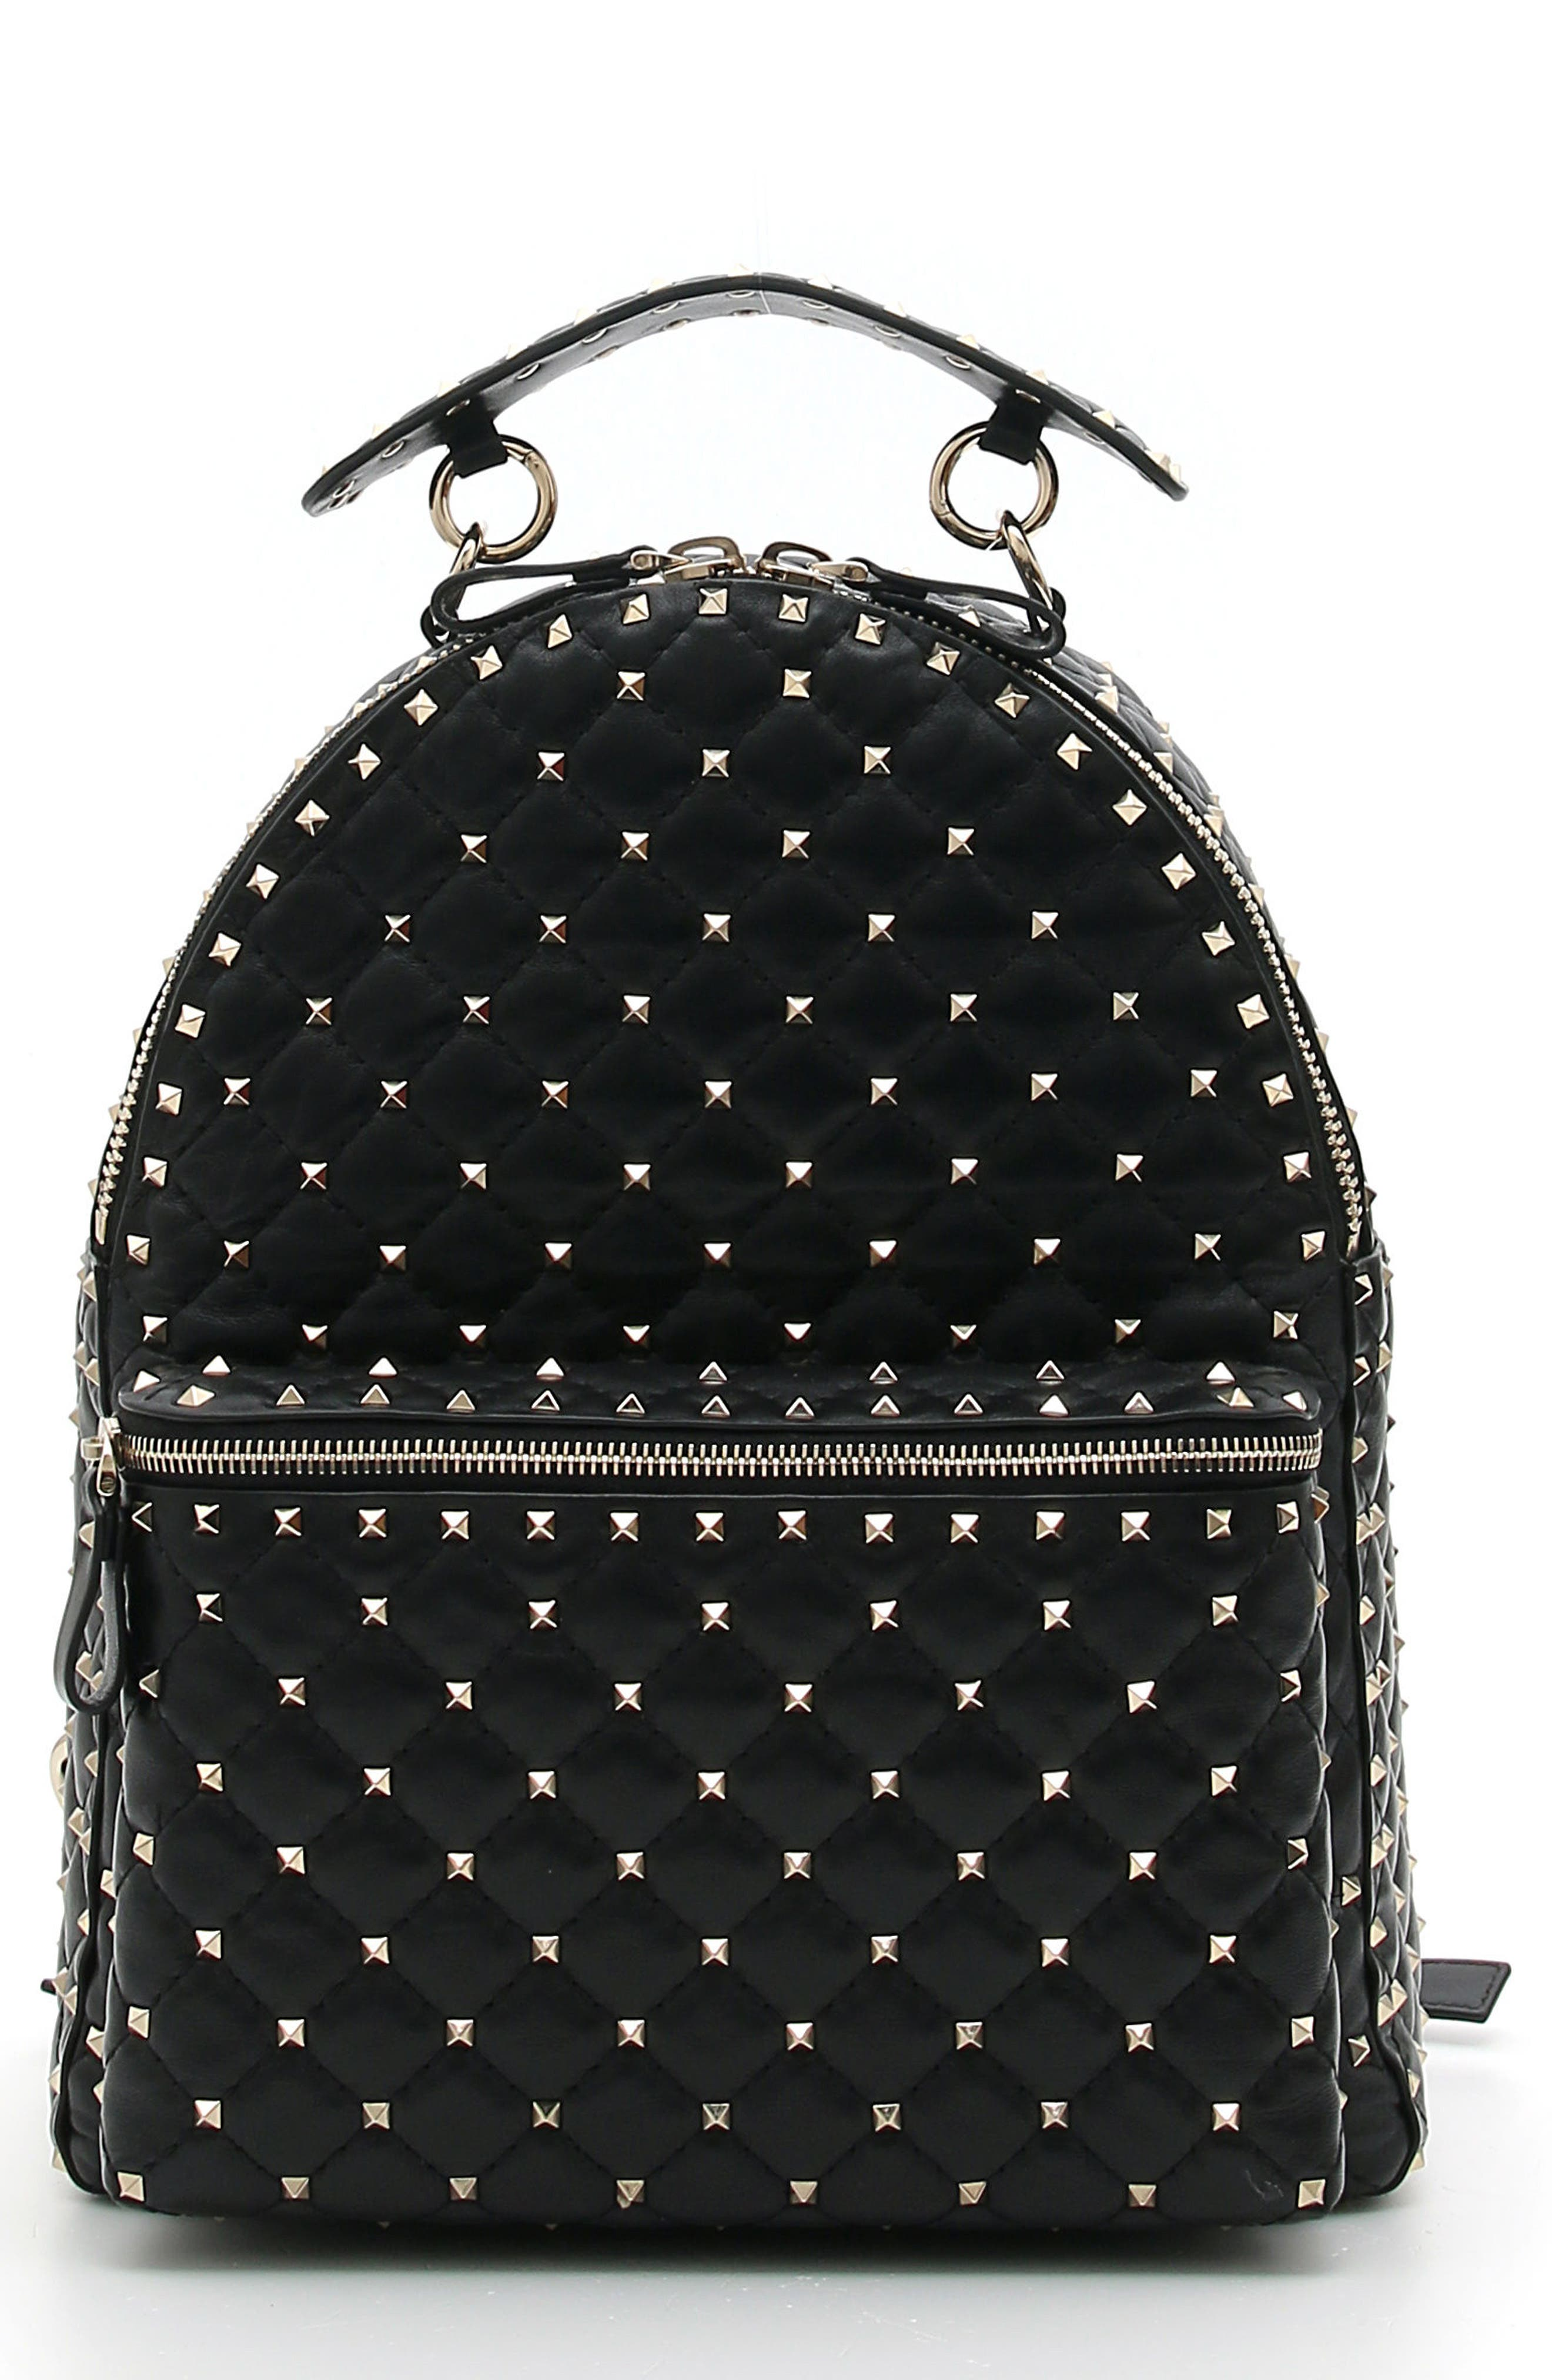 Rockstud Spike Quilted Leather Backpack,                             Main thumbnail 1, color,                             Black